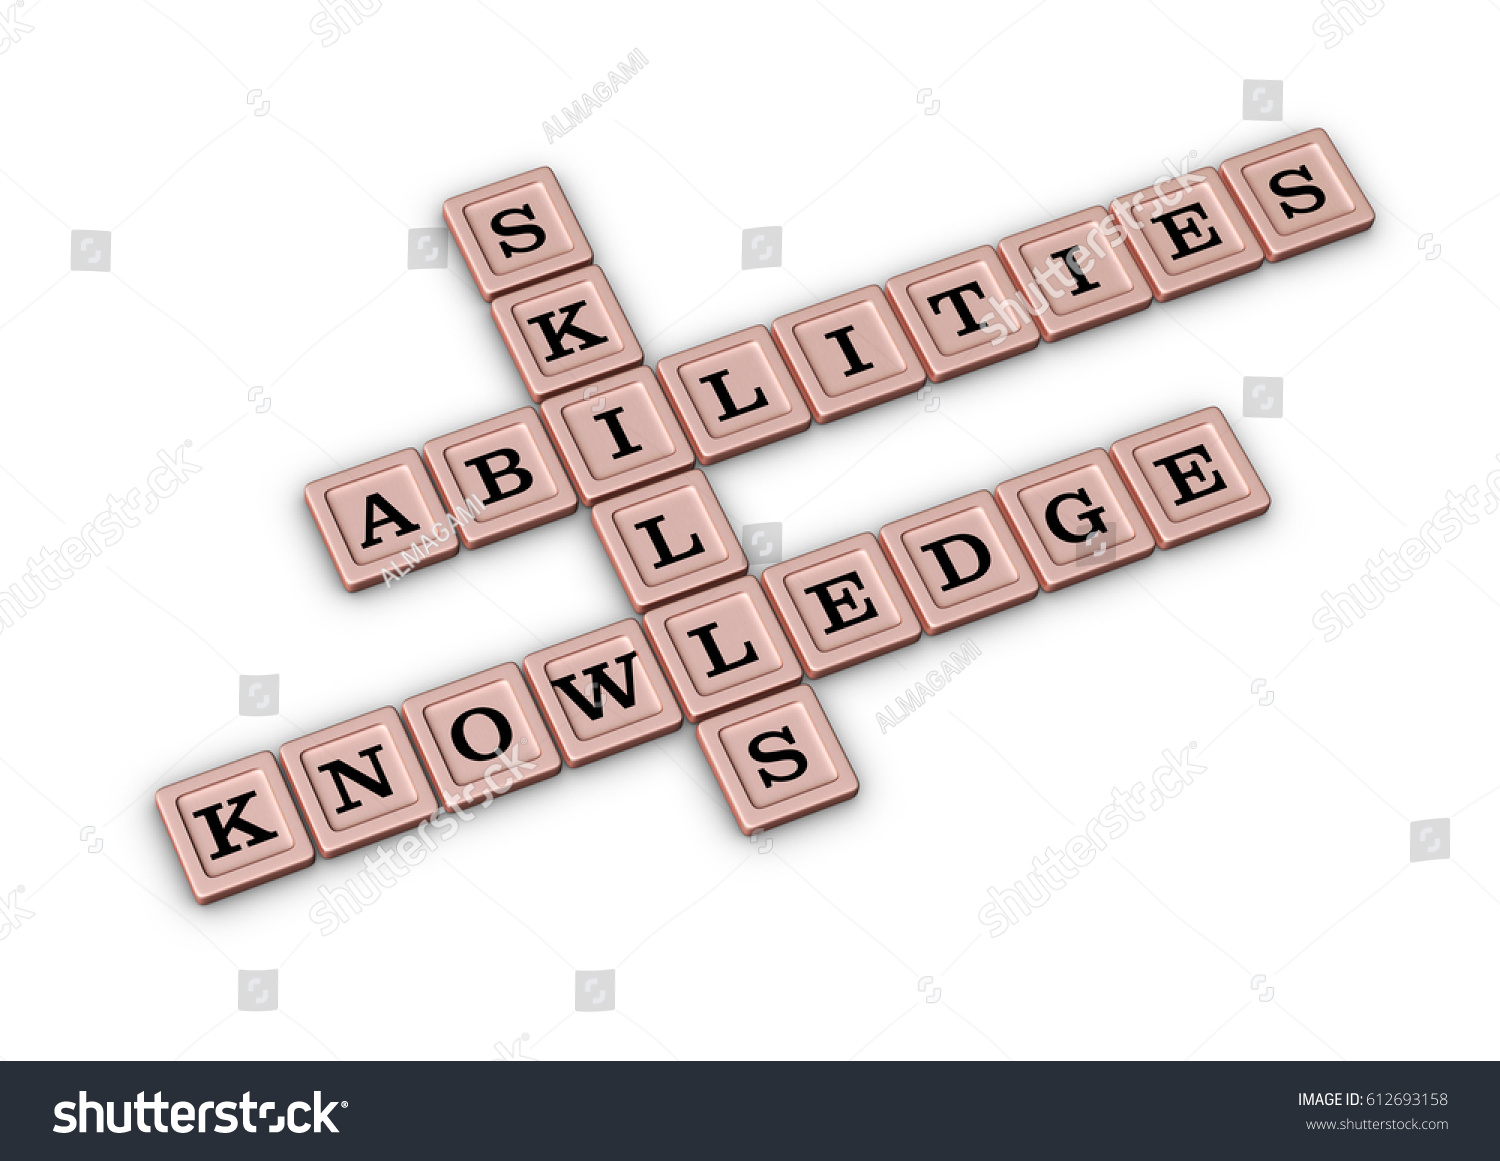 skills knowledge abilities crossword puzzle qualities stock skills knowledge and abilities crossword puzzle qualities for job candidates 3d illustration rose